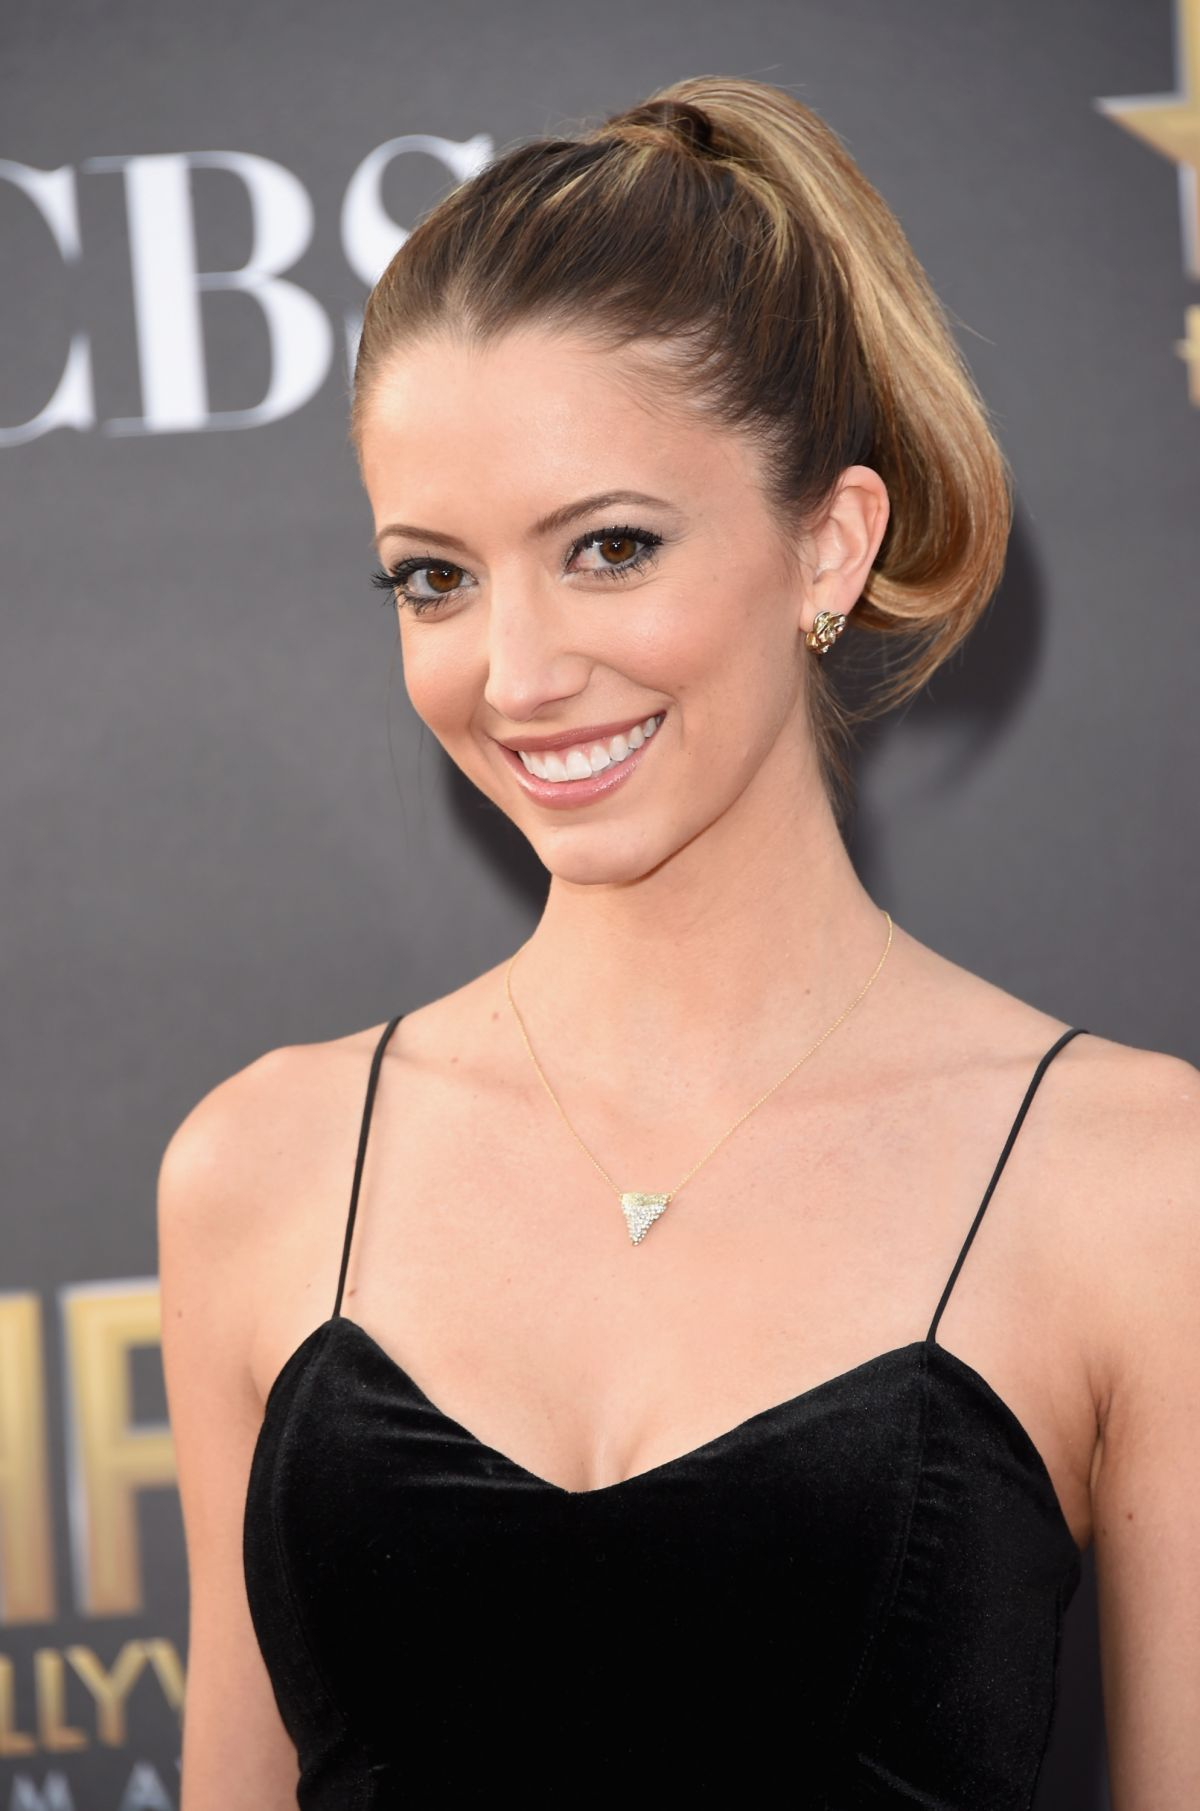 TARYN SOUTHERN at 2014 Hollywood Film Awards